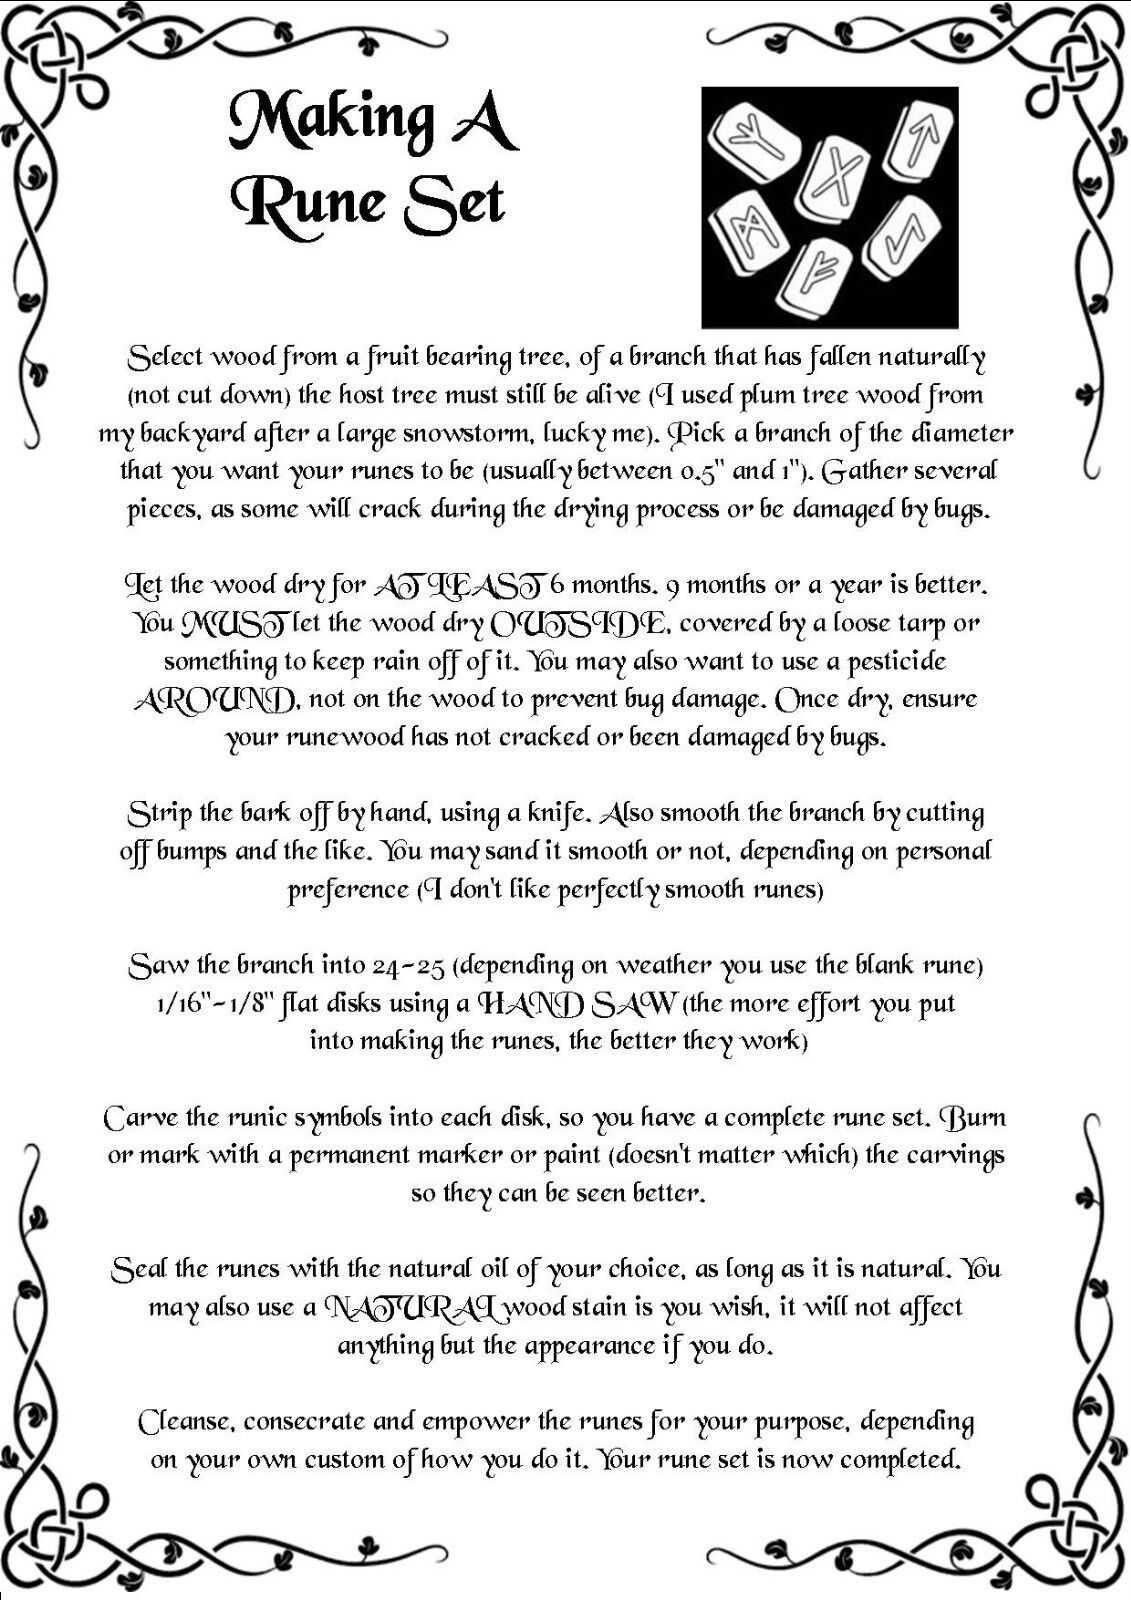 photograph regarding Printable Book of Shadows called Ebook Of Shadow - 800+ Printable Webpages Of Spells, Rituals, Further upon Flash Commitment · $11.95 · Publications